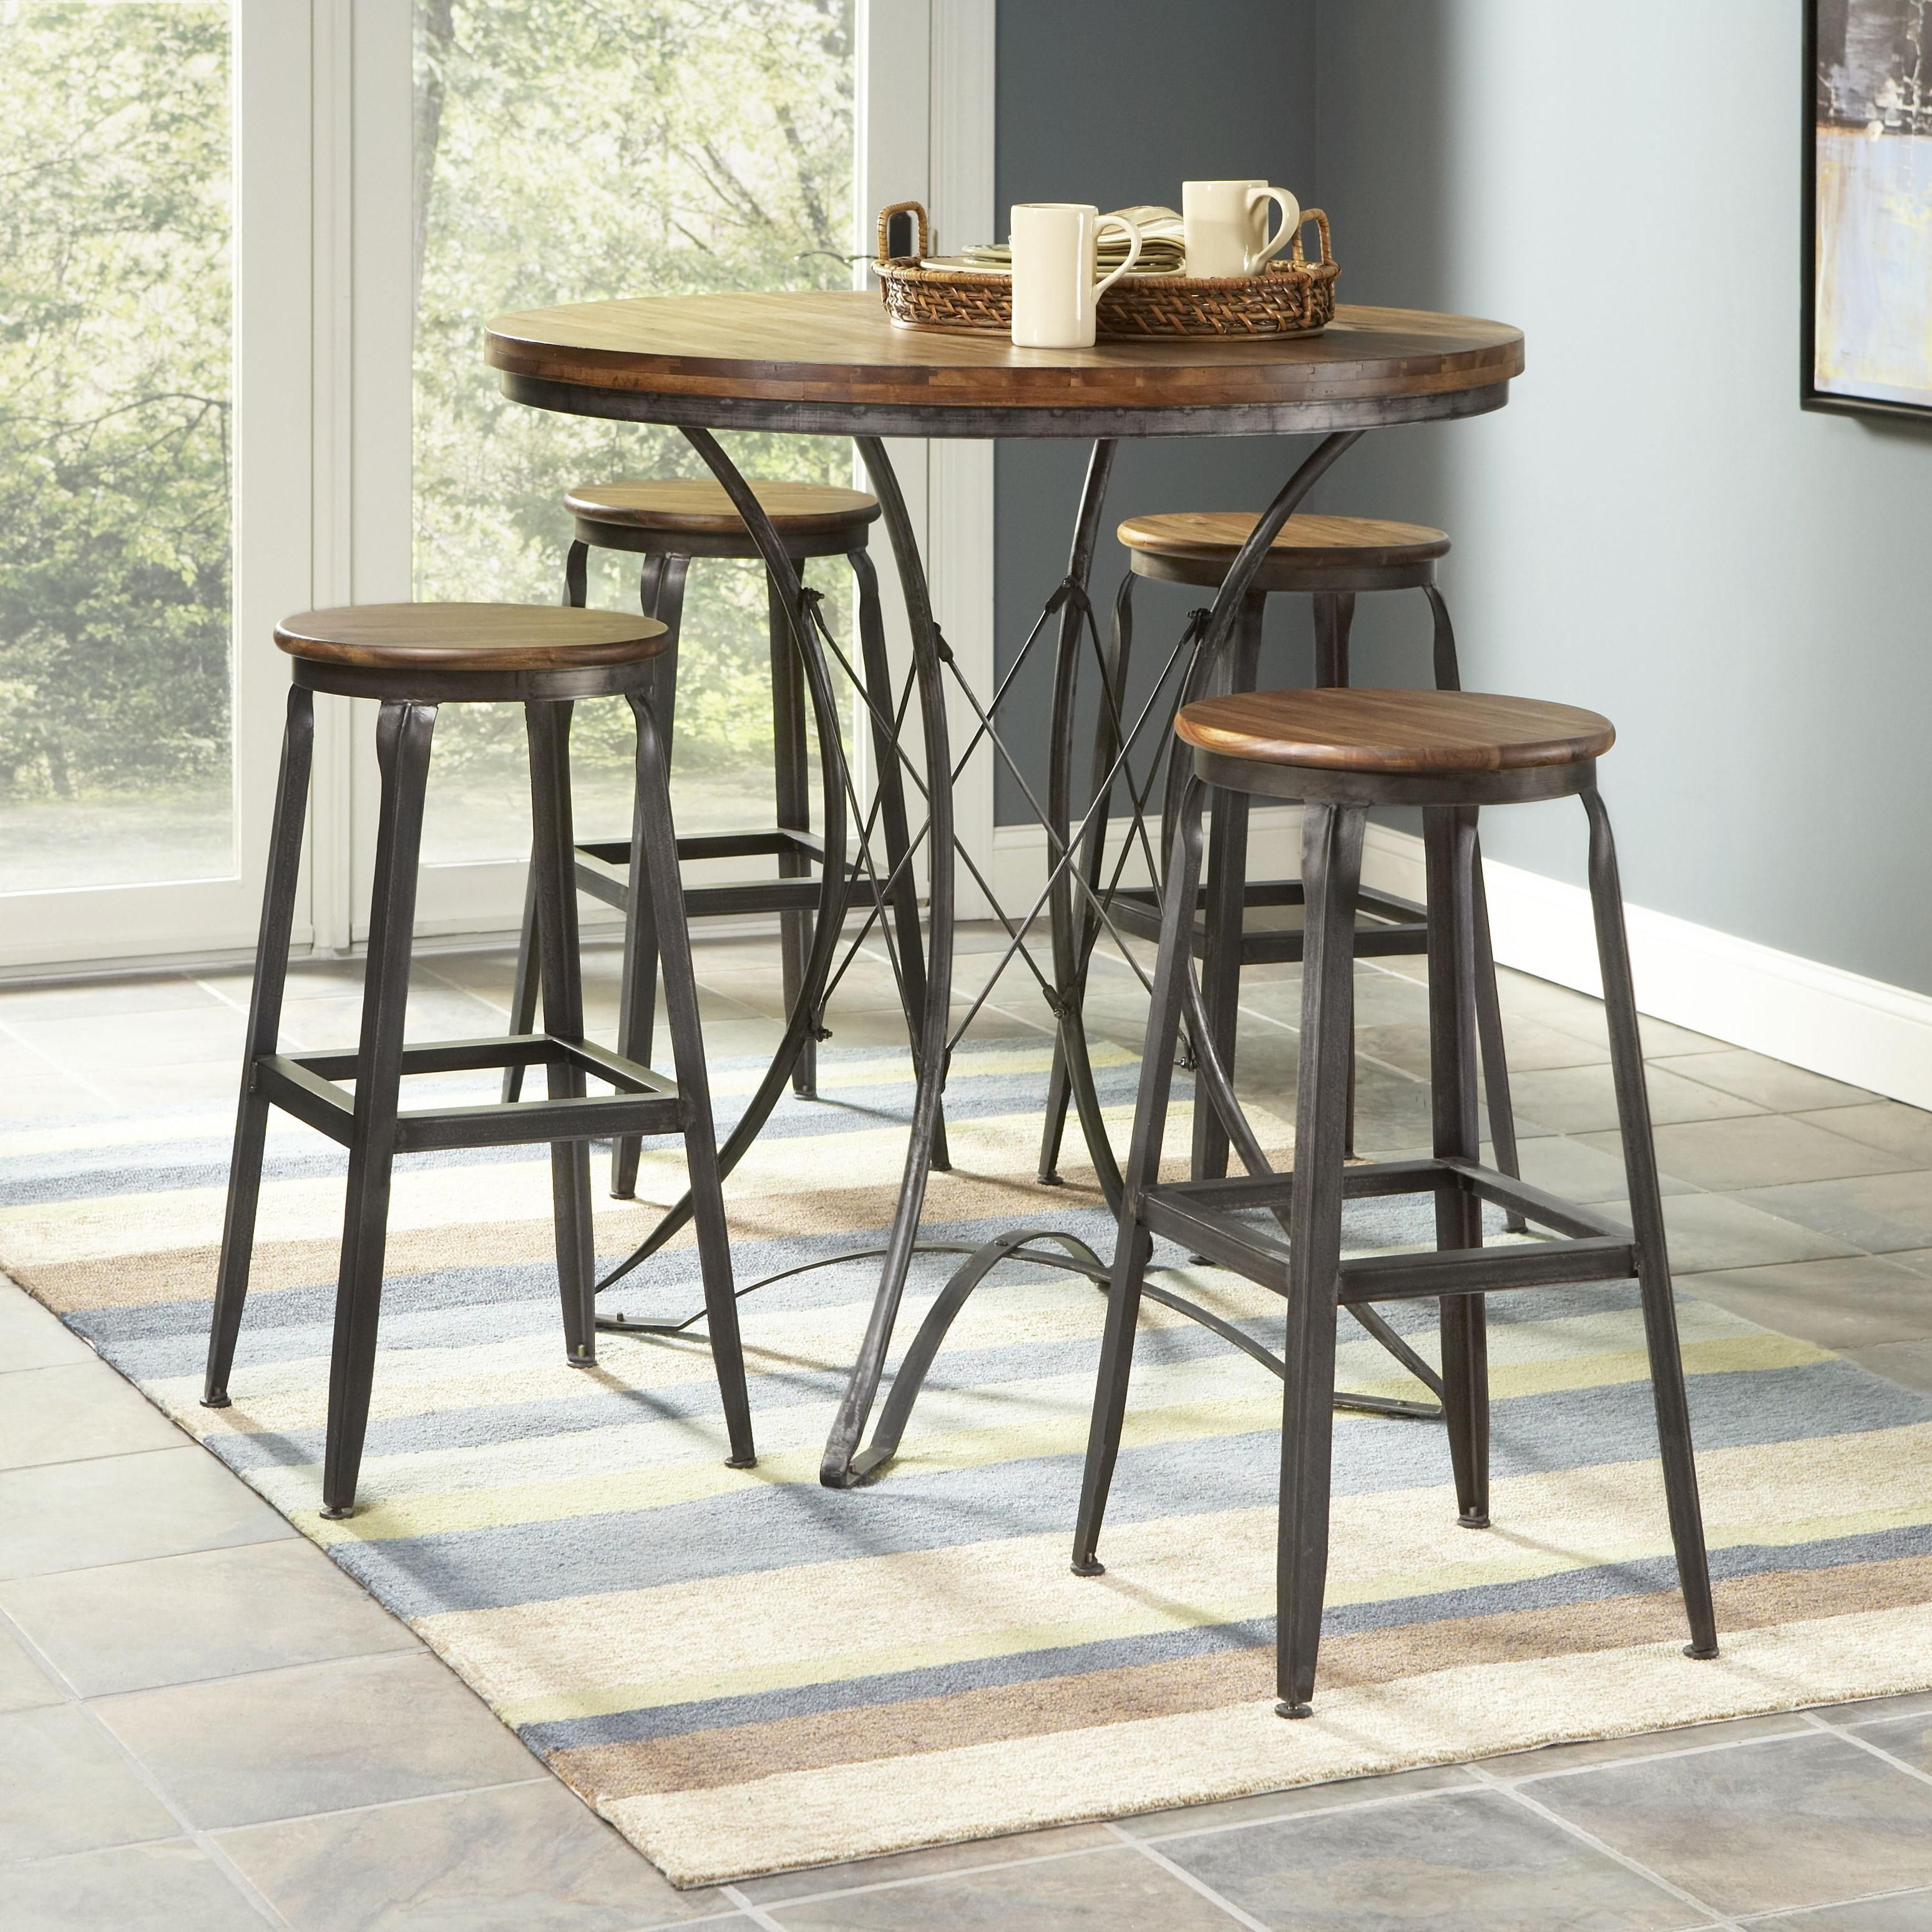 Largo Abbey Five Piece Pub Table And Backless Stools Dining Set   Wolf  Furniture   Pub Table And Stool Set Pennsylvania, Maryland, Virginia